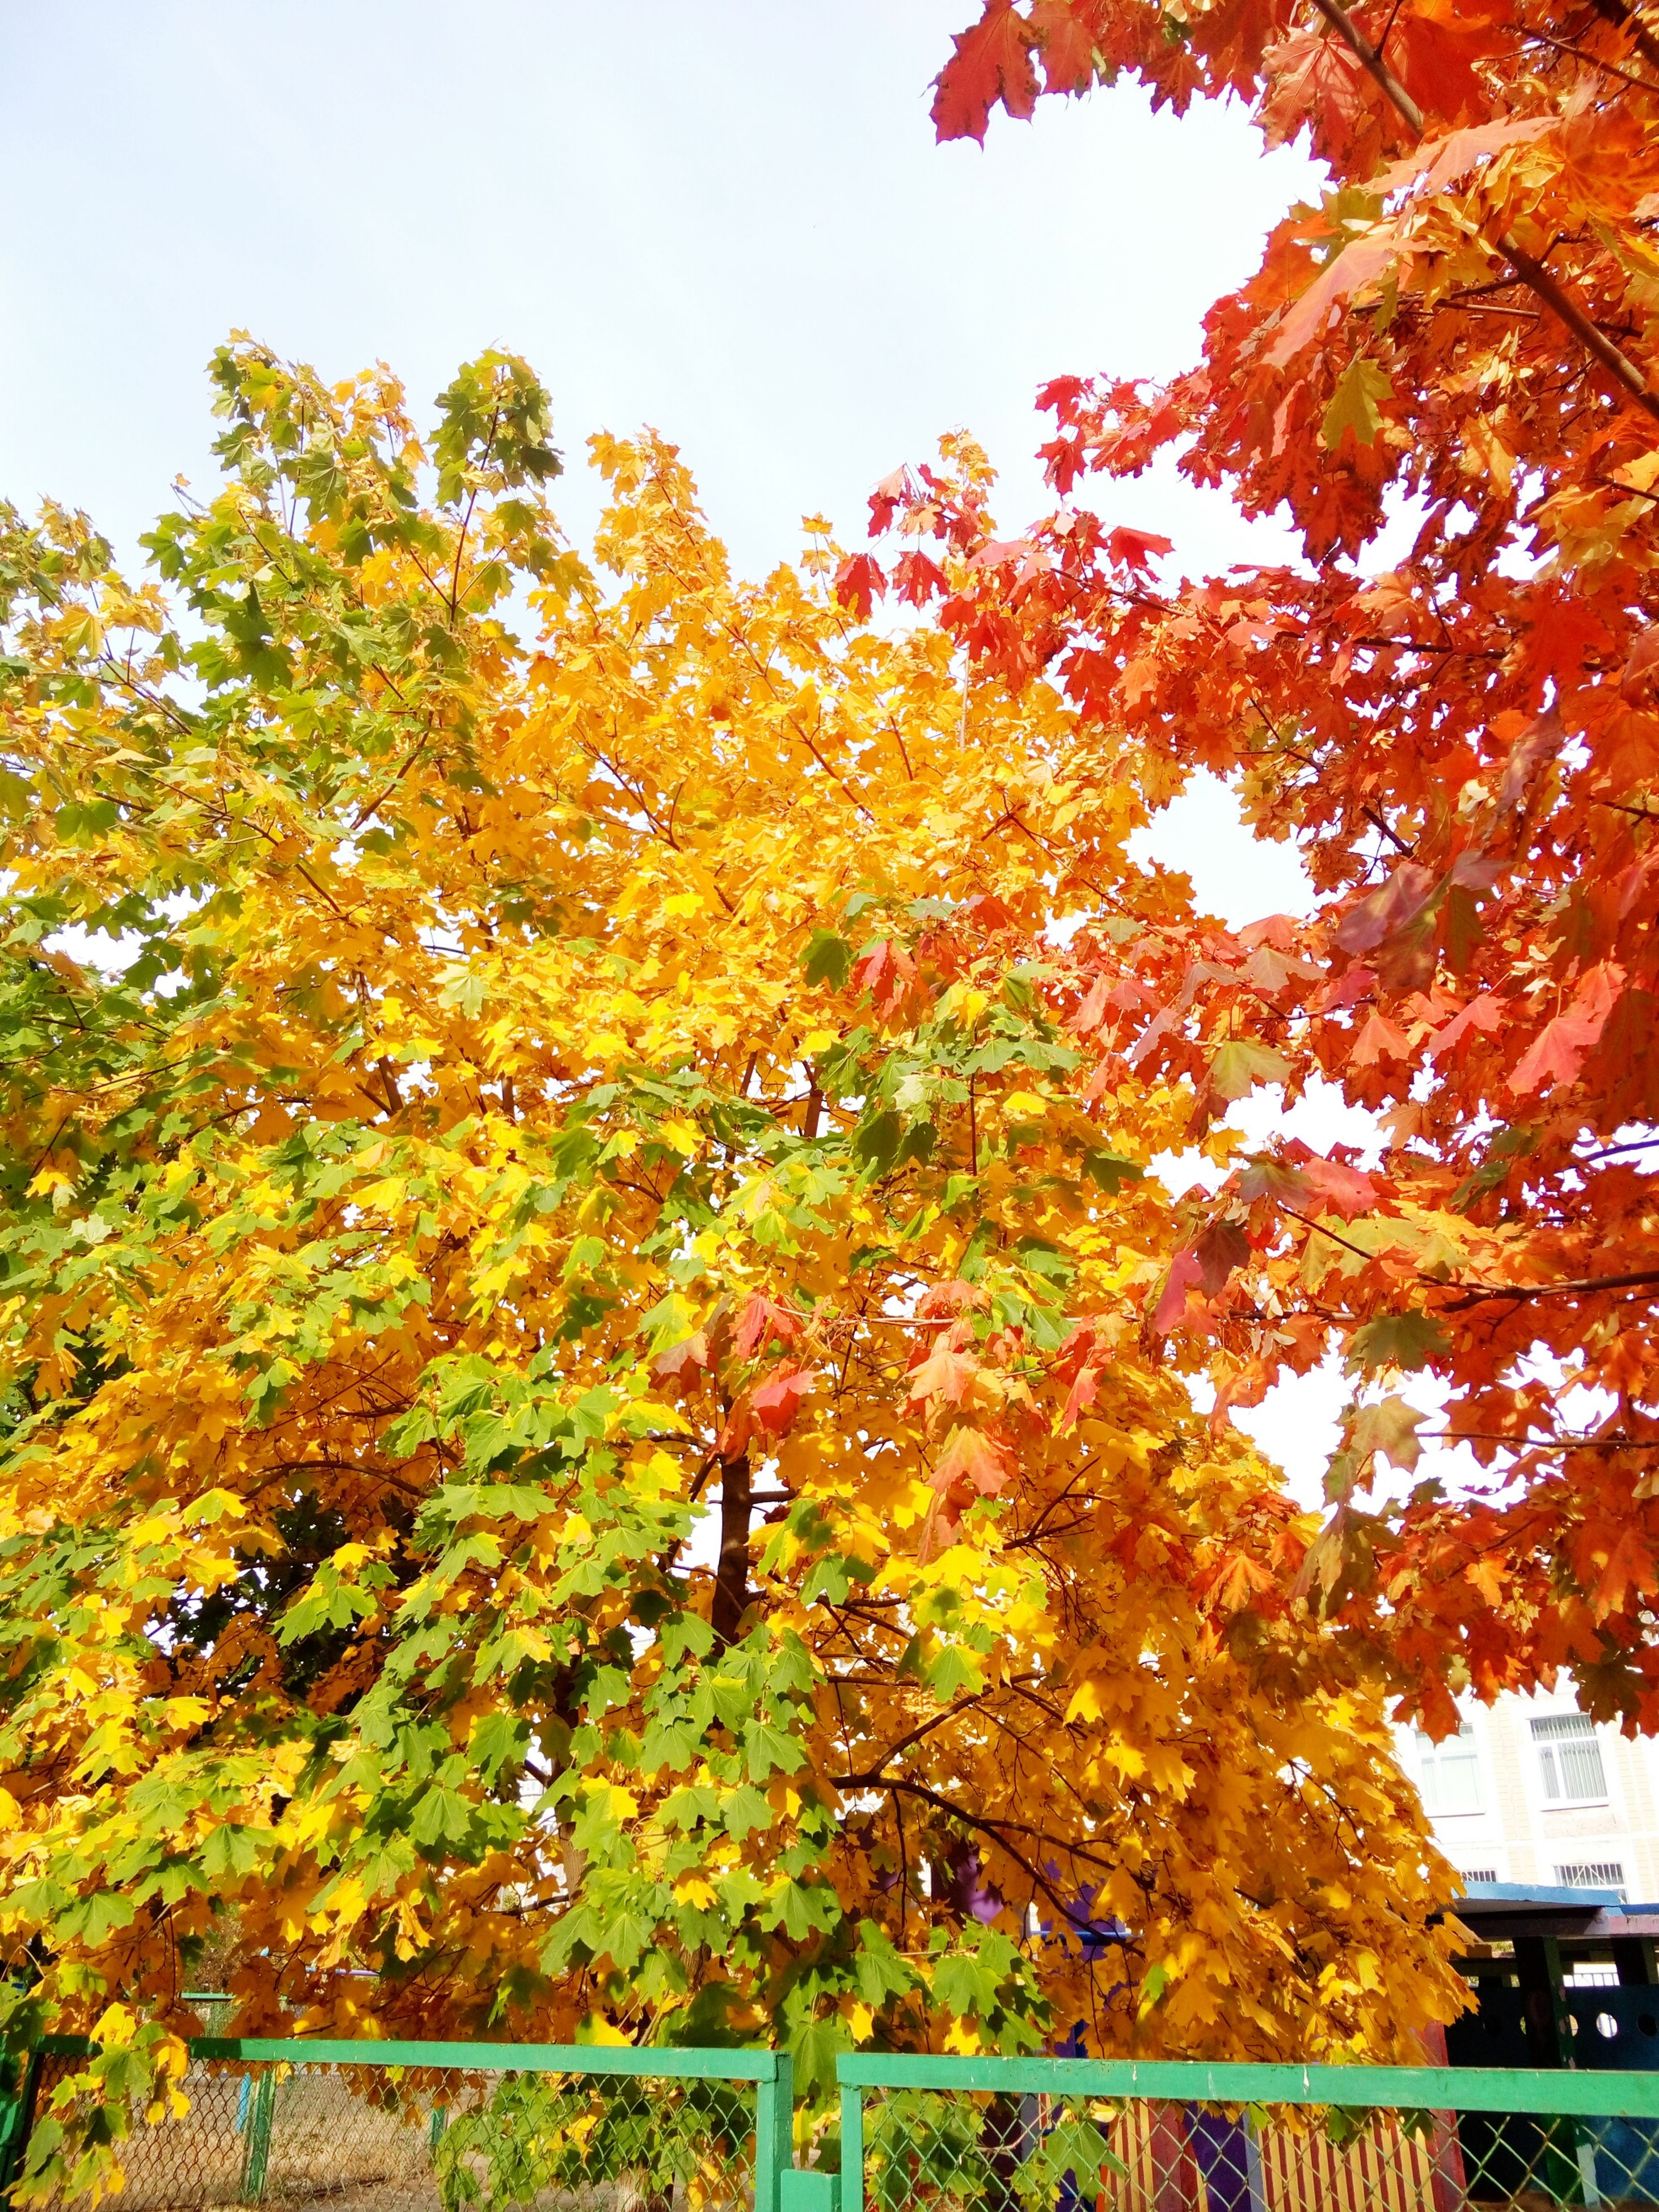 autumn, change, tree, leaf, growth, nature, beauty in nature, outdoors, orange color, no people, day, maple tree, low angle view, maple leaf, branch, yellow, scenics, sky, close-up, maple, freshness